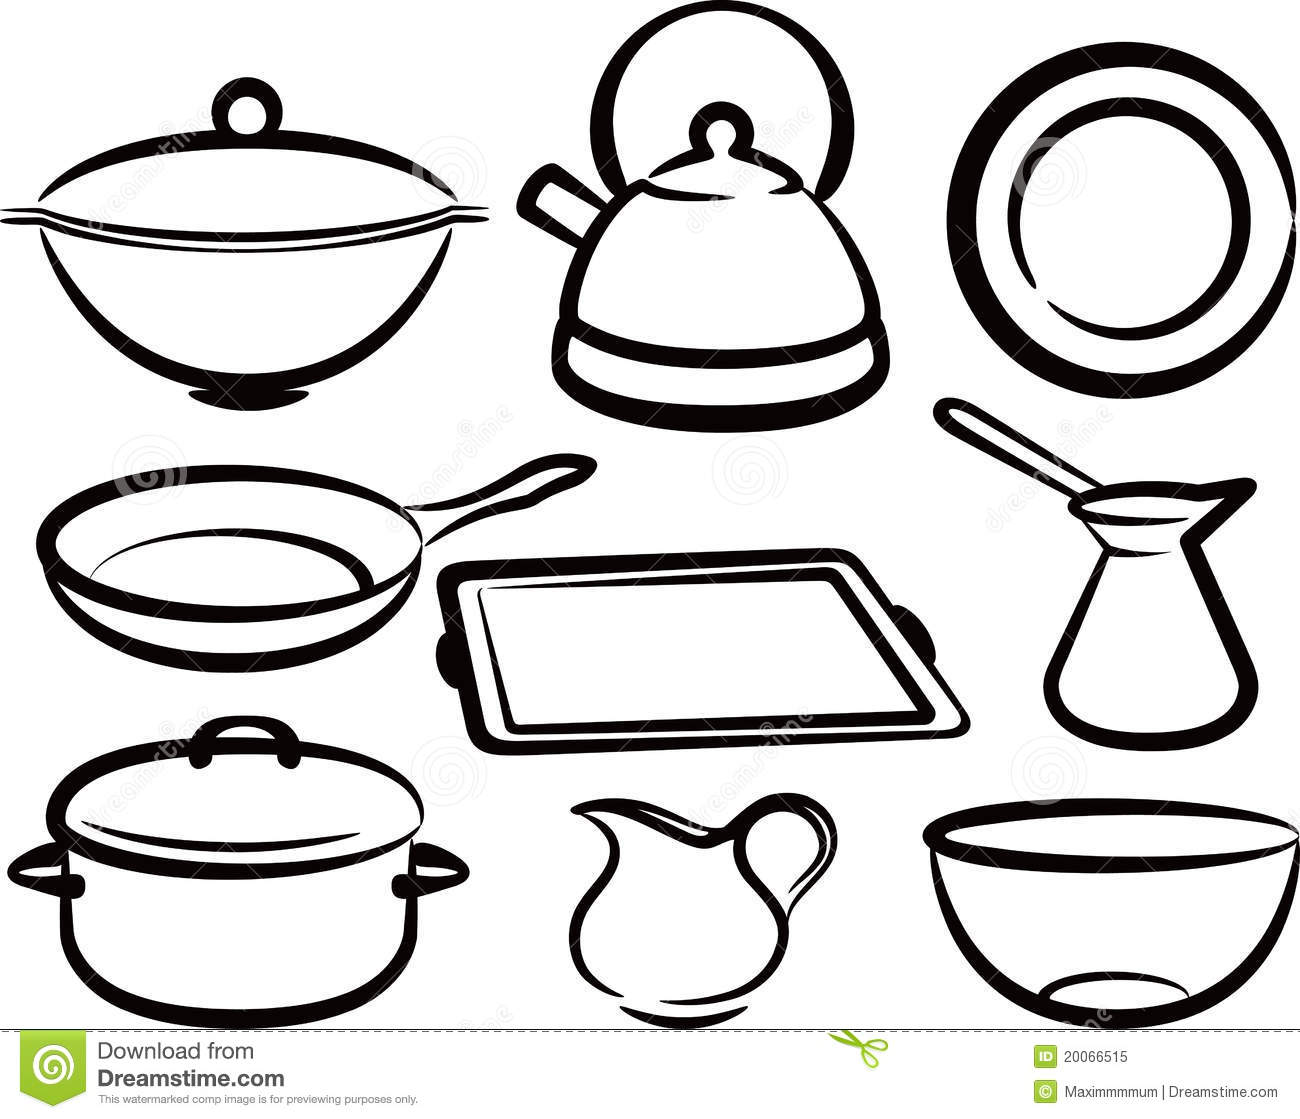 Set of kitchen utensil stock vector illustration of for Utensilios de cocina para dibujar